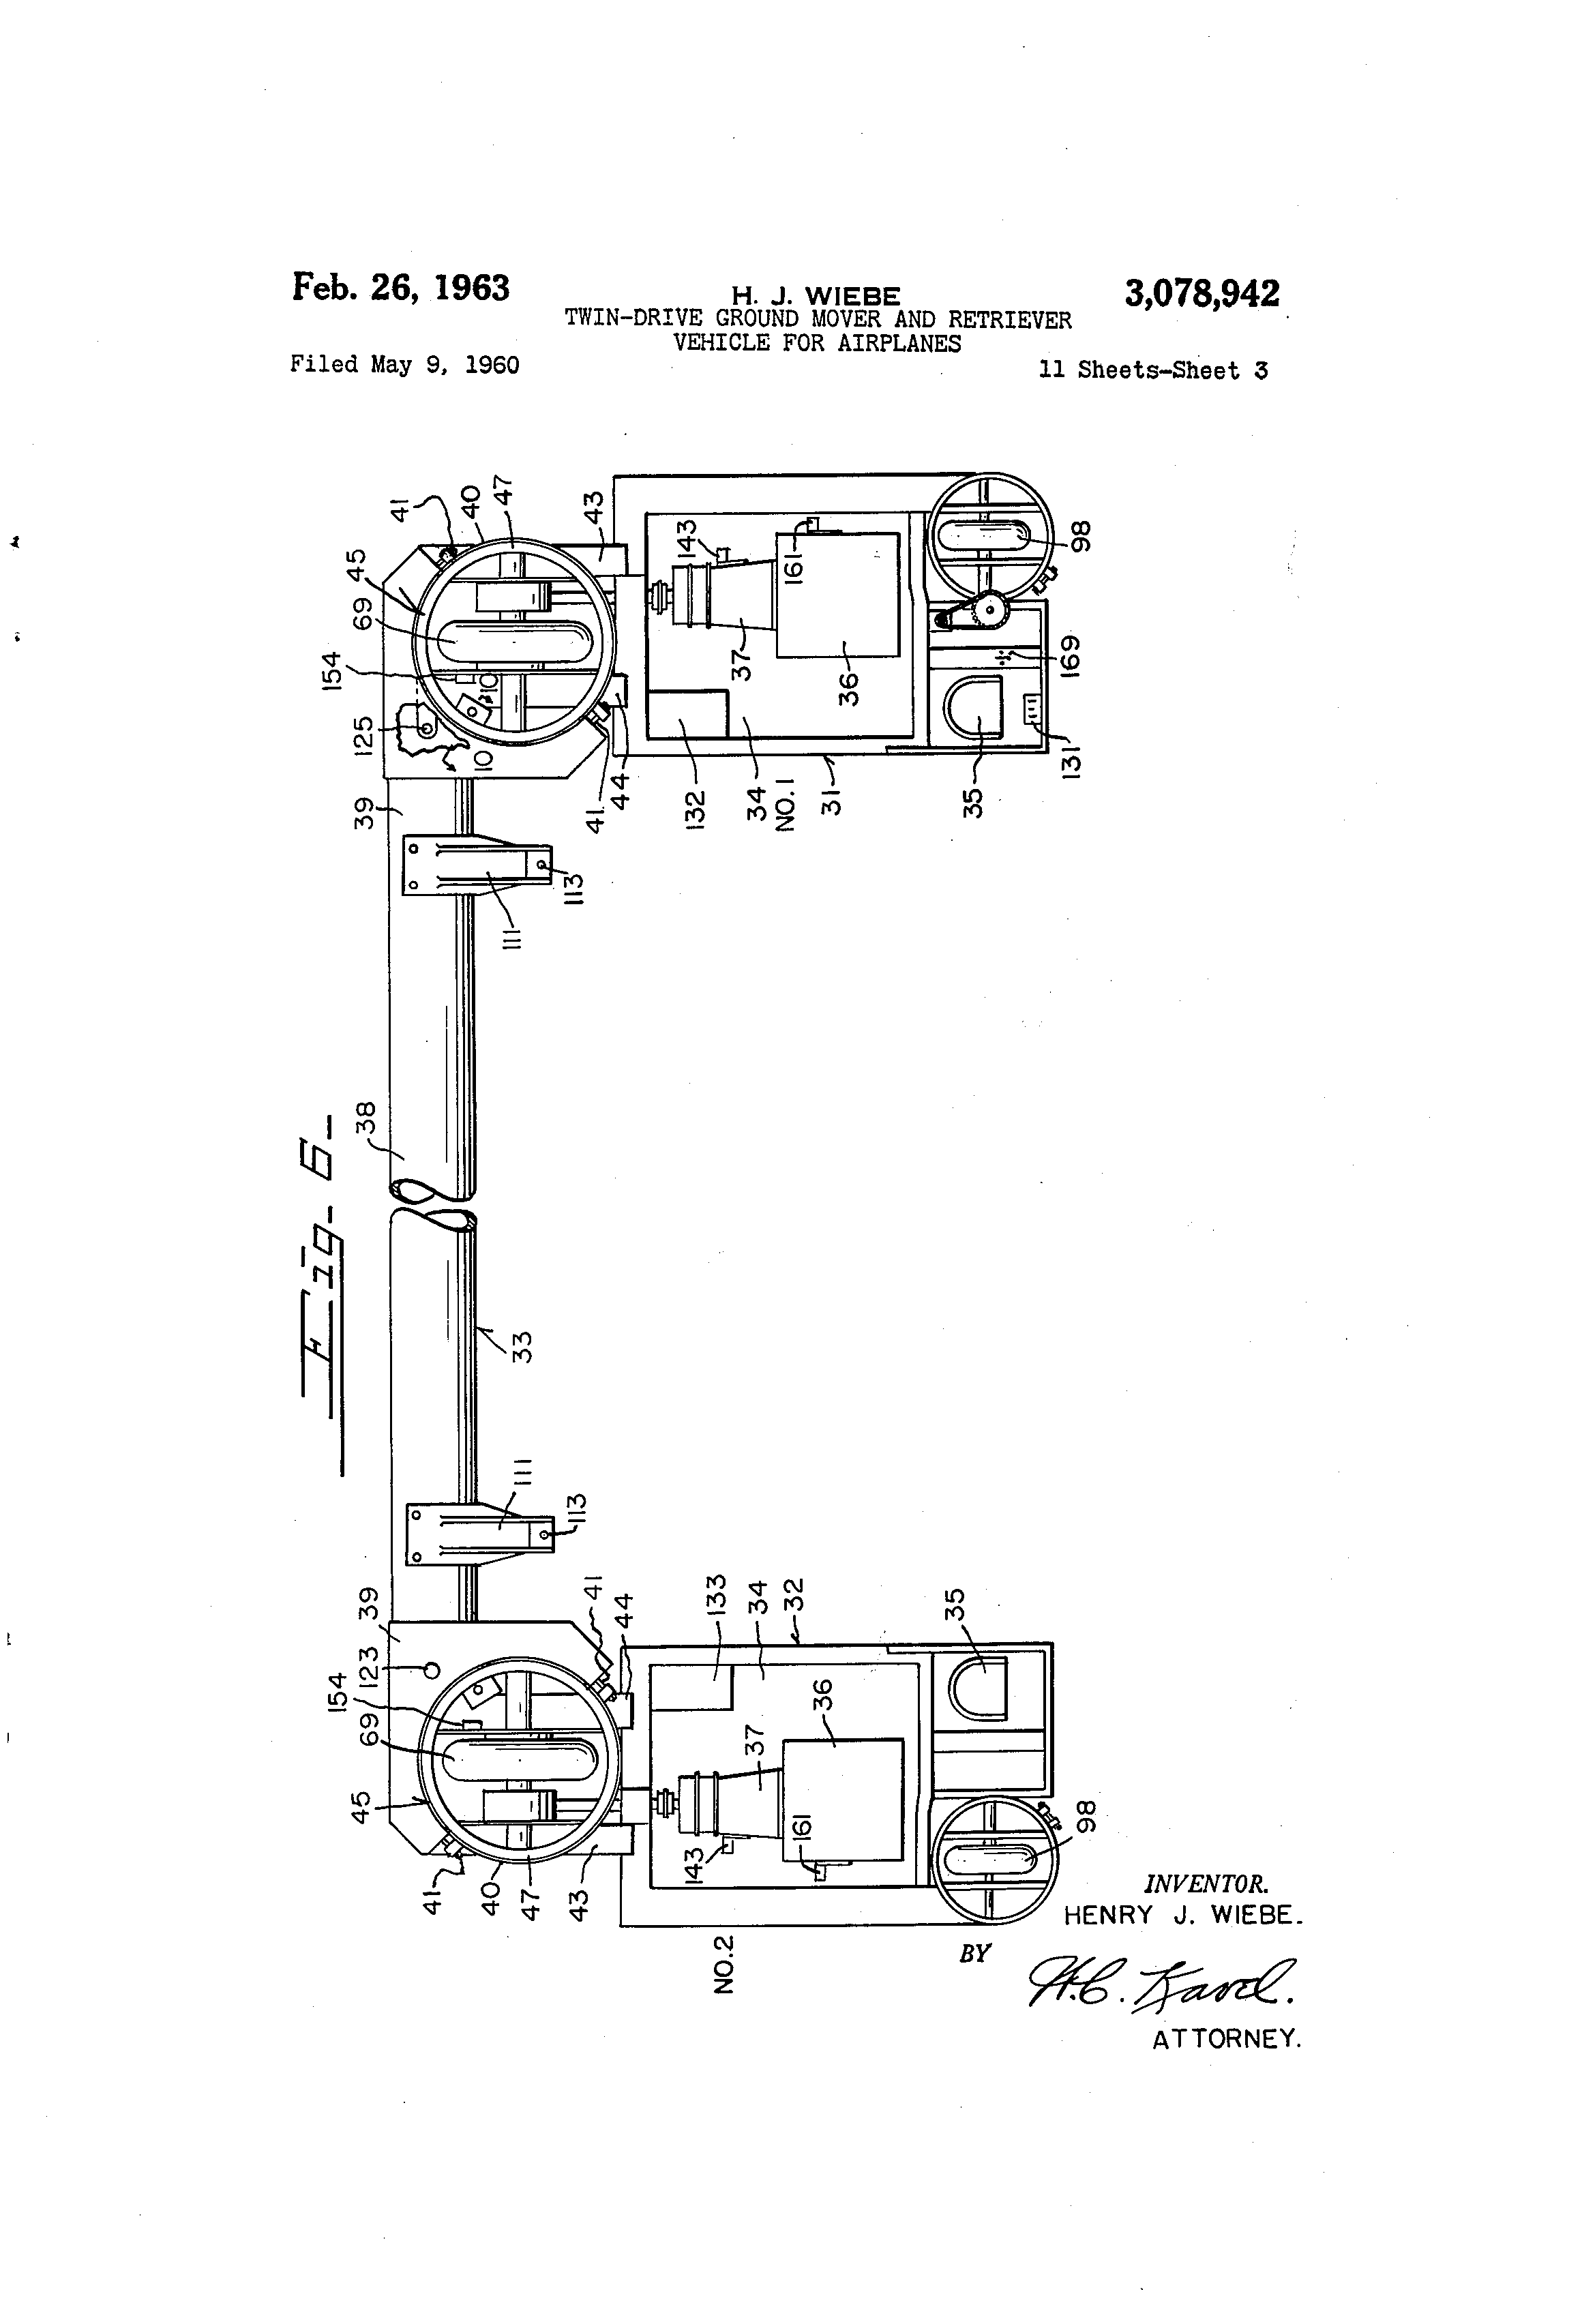 patent us3078942 twin drive ground mover and retriever vehicle patent drawing